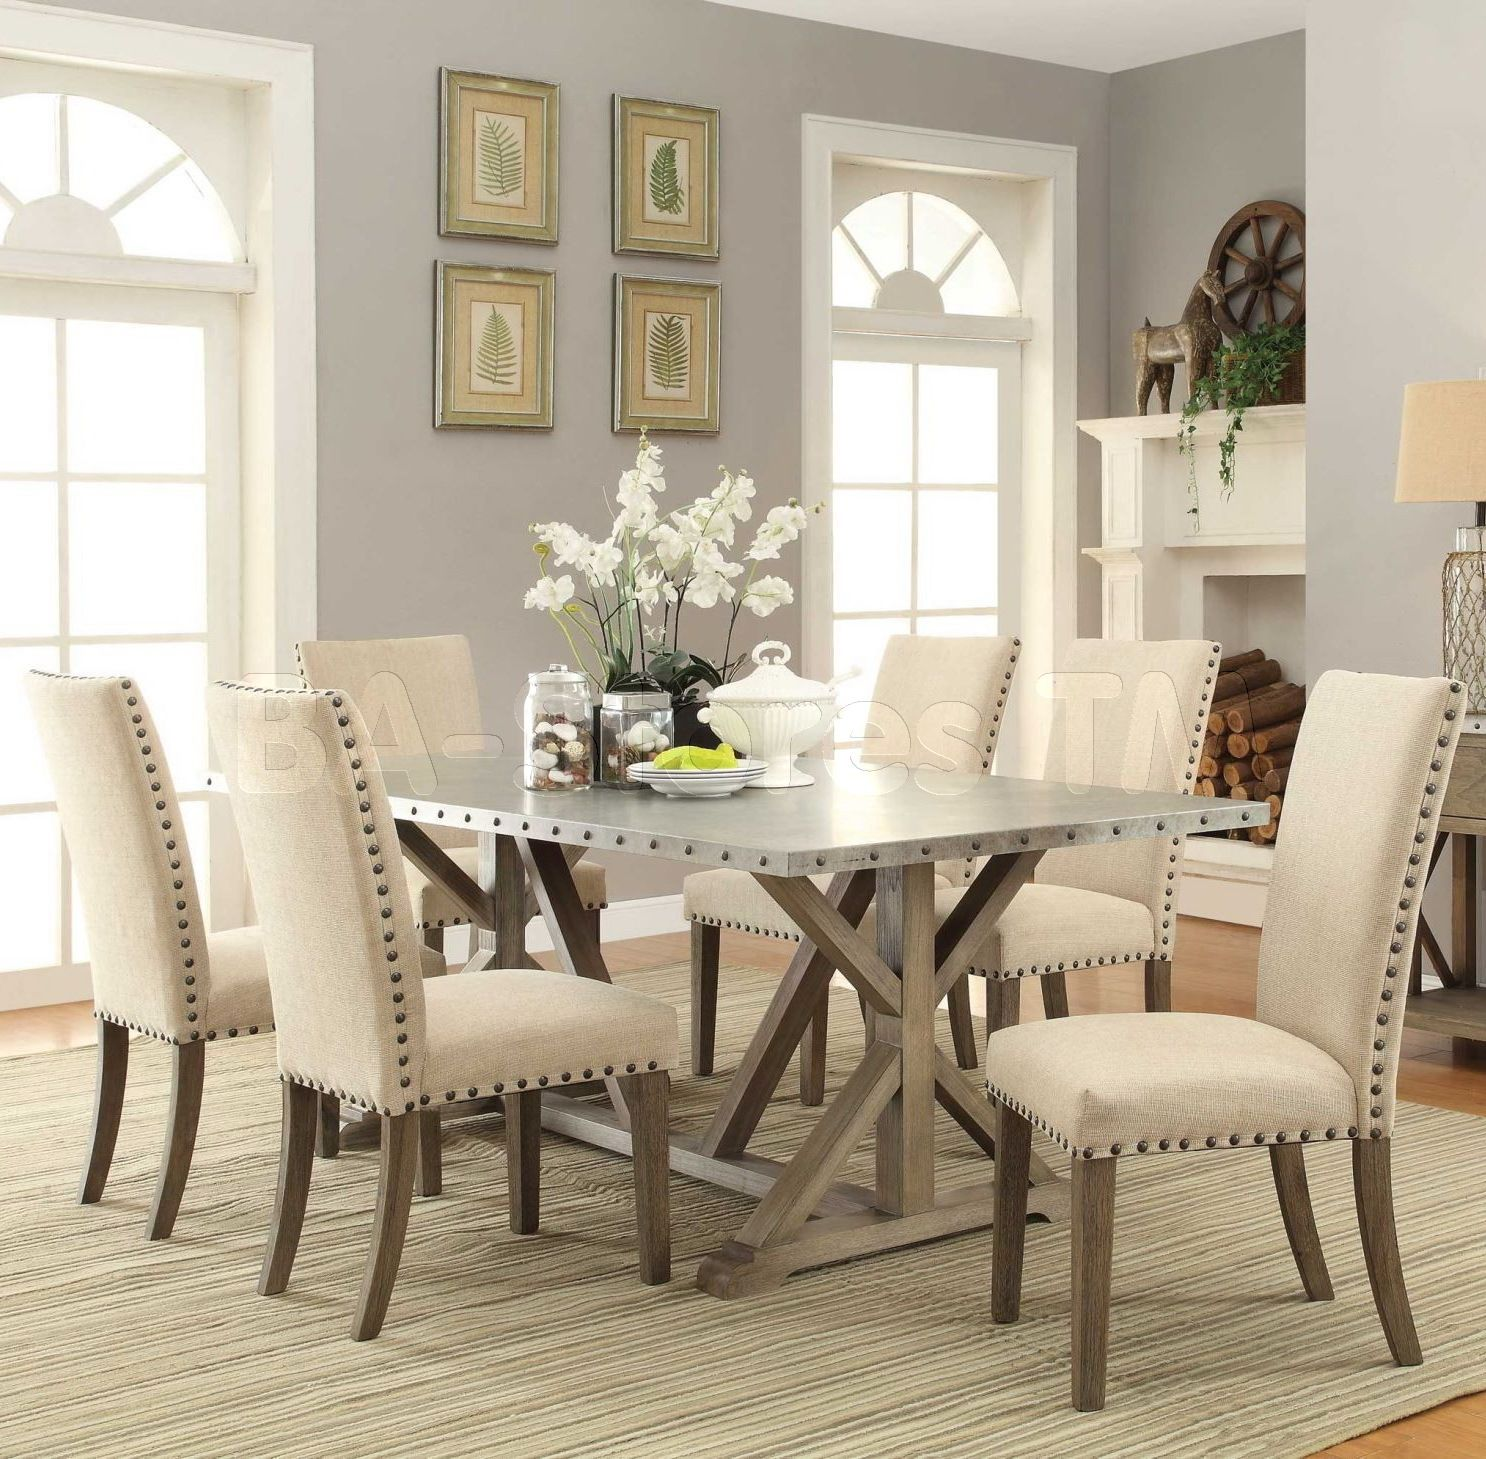 cool Best Driftwood Dining Room Table 68 On Home Design Ideas with ...